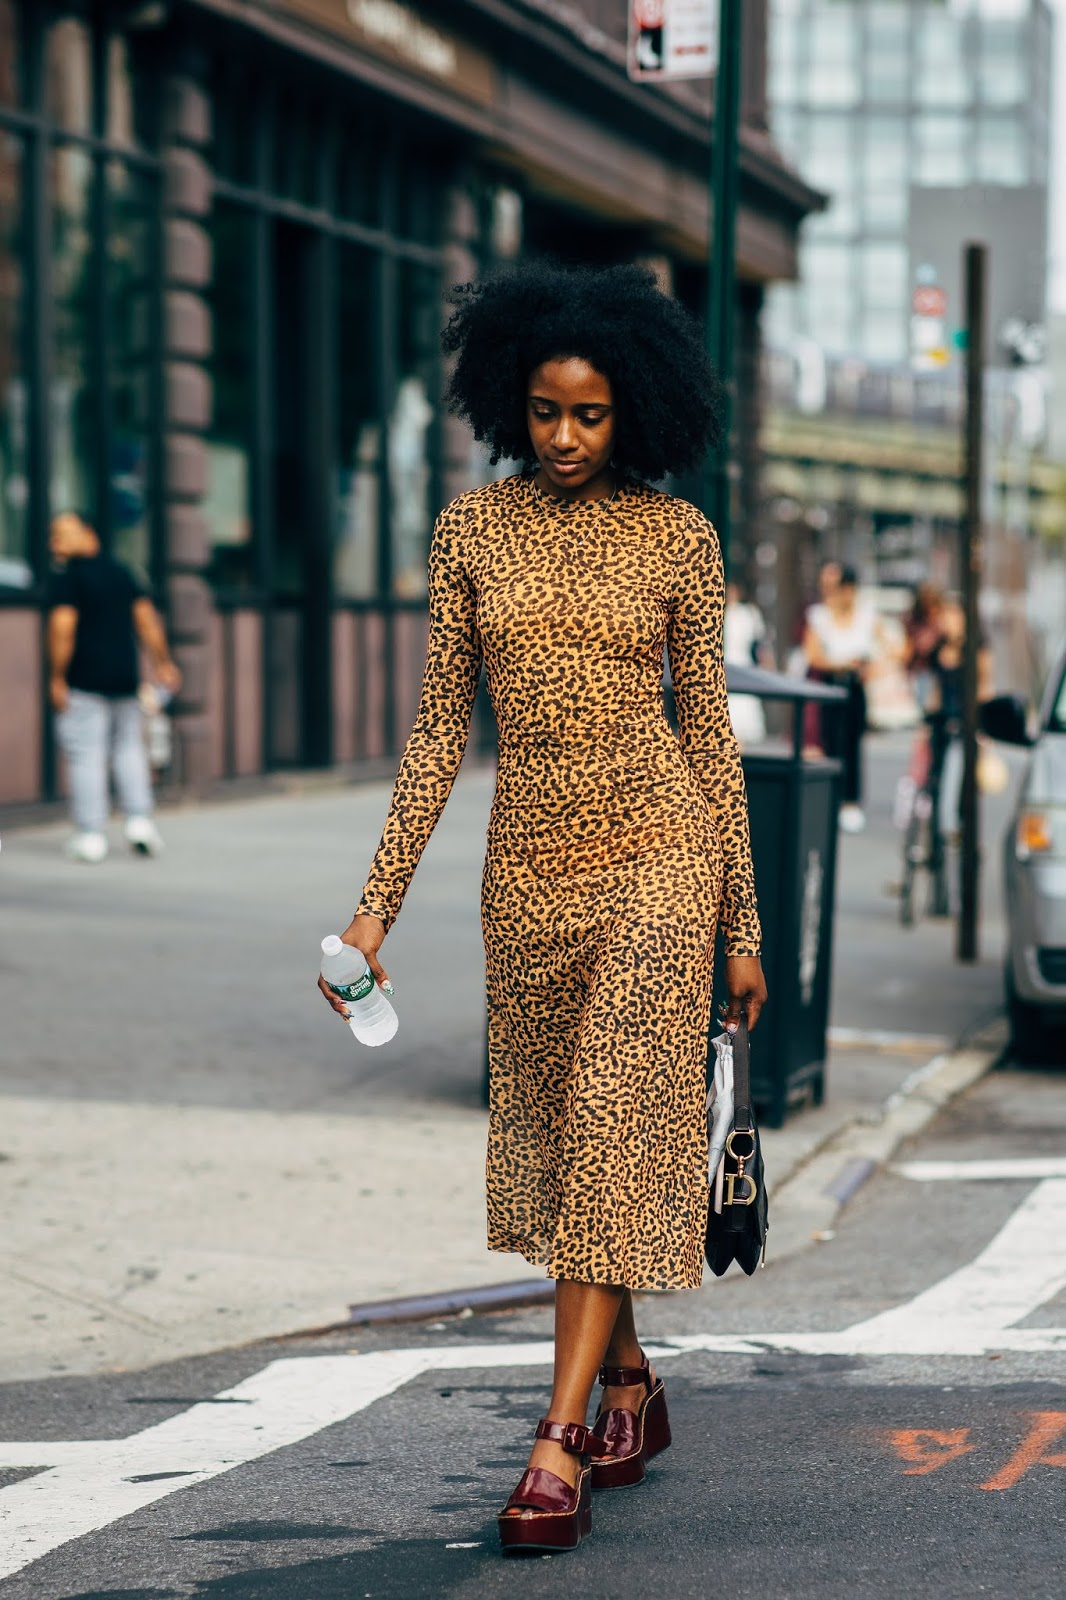 Street Style Outfit Inspiration — Leopard Print Dress and Platform Sandals